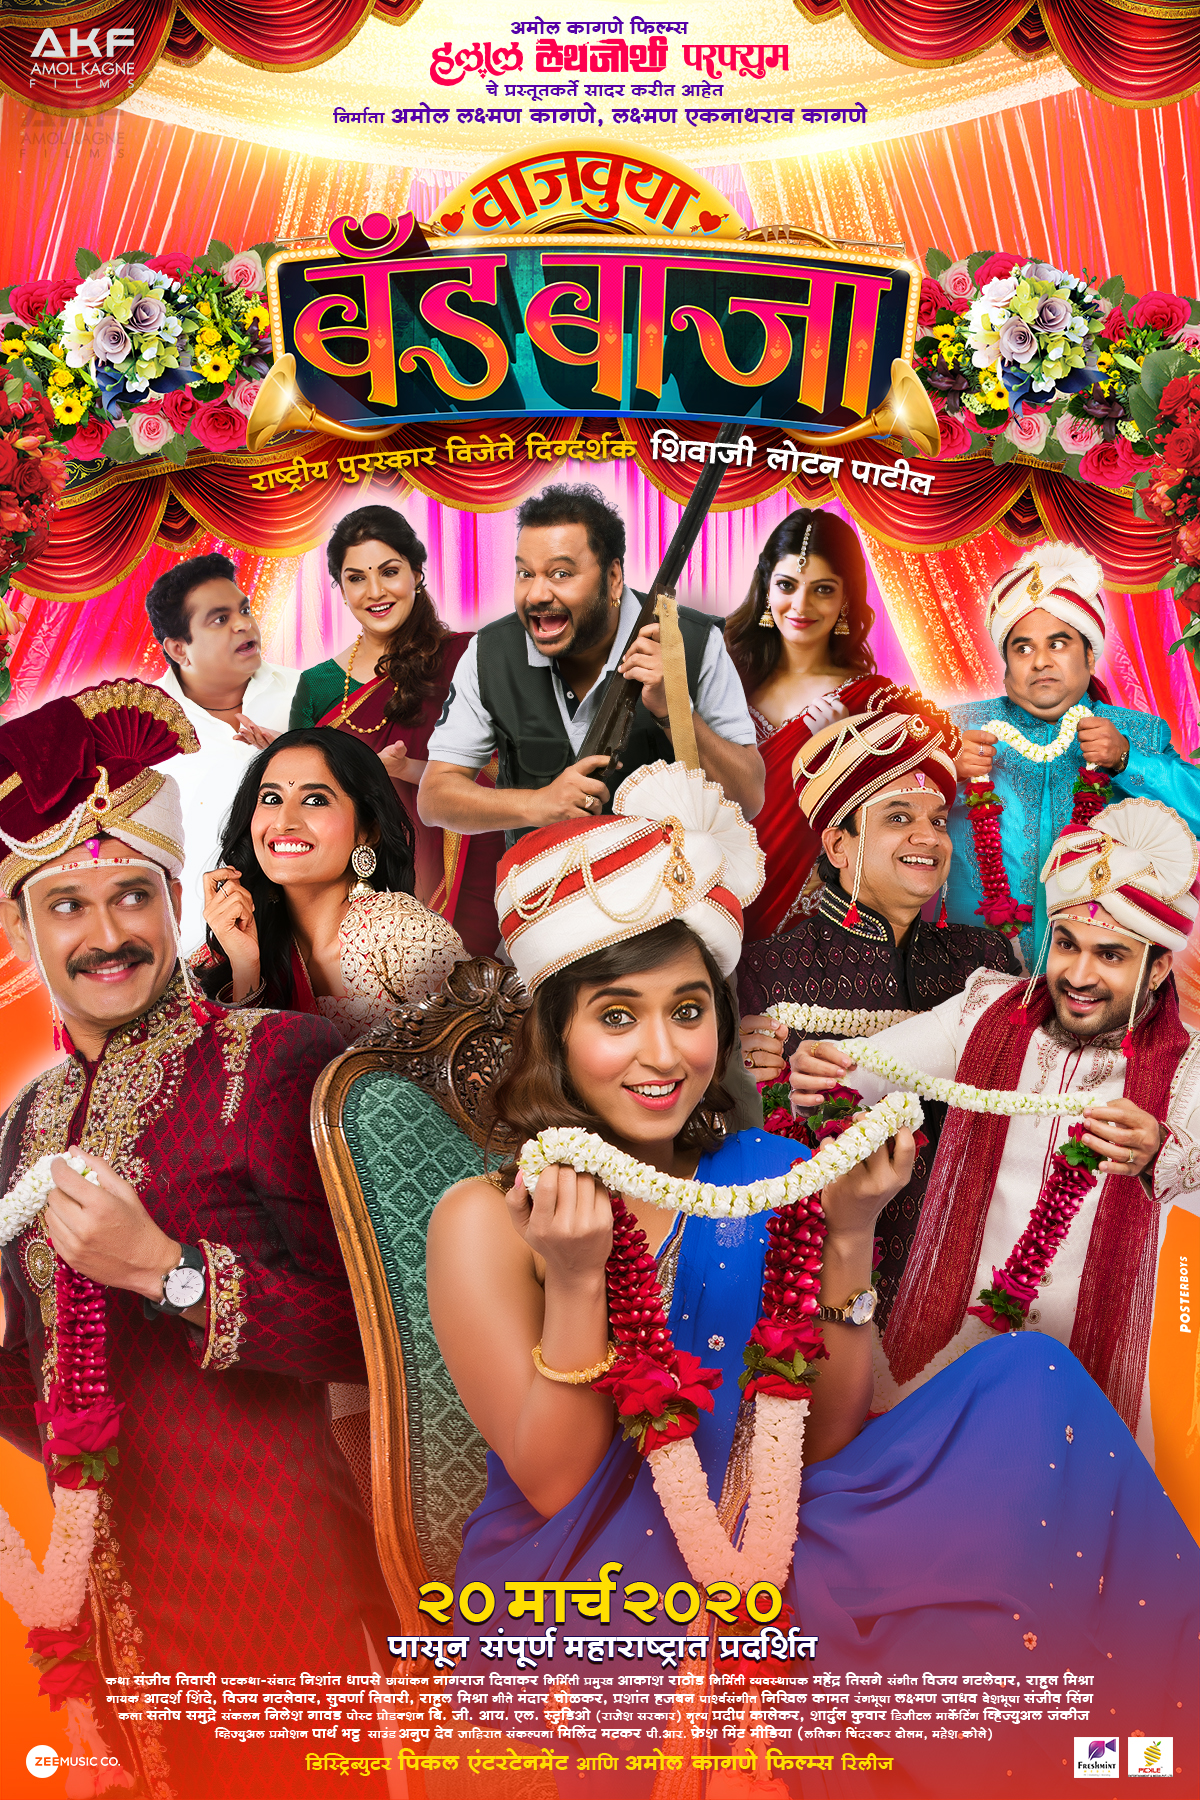 Vajvuya Band Baja 2020 Marathi 720p HDRip ESub 750MB Download